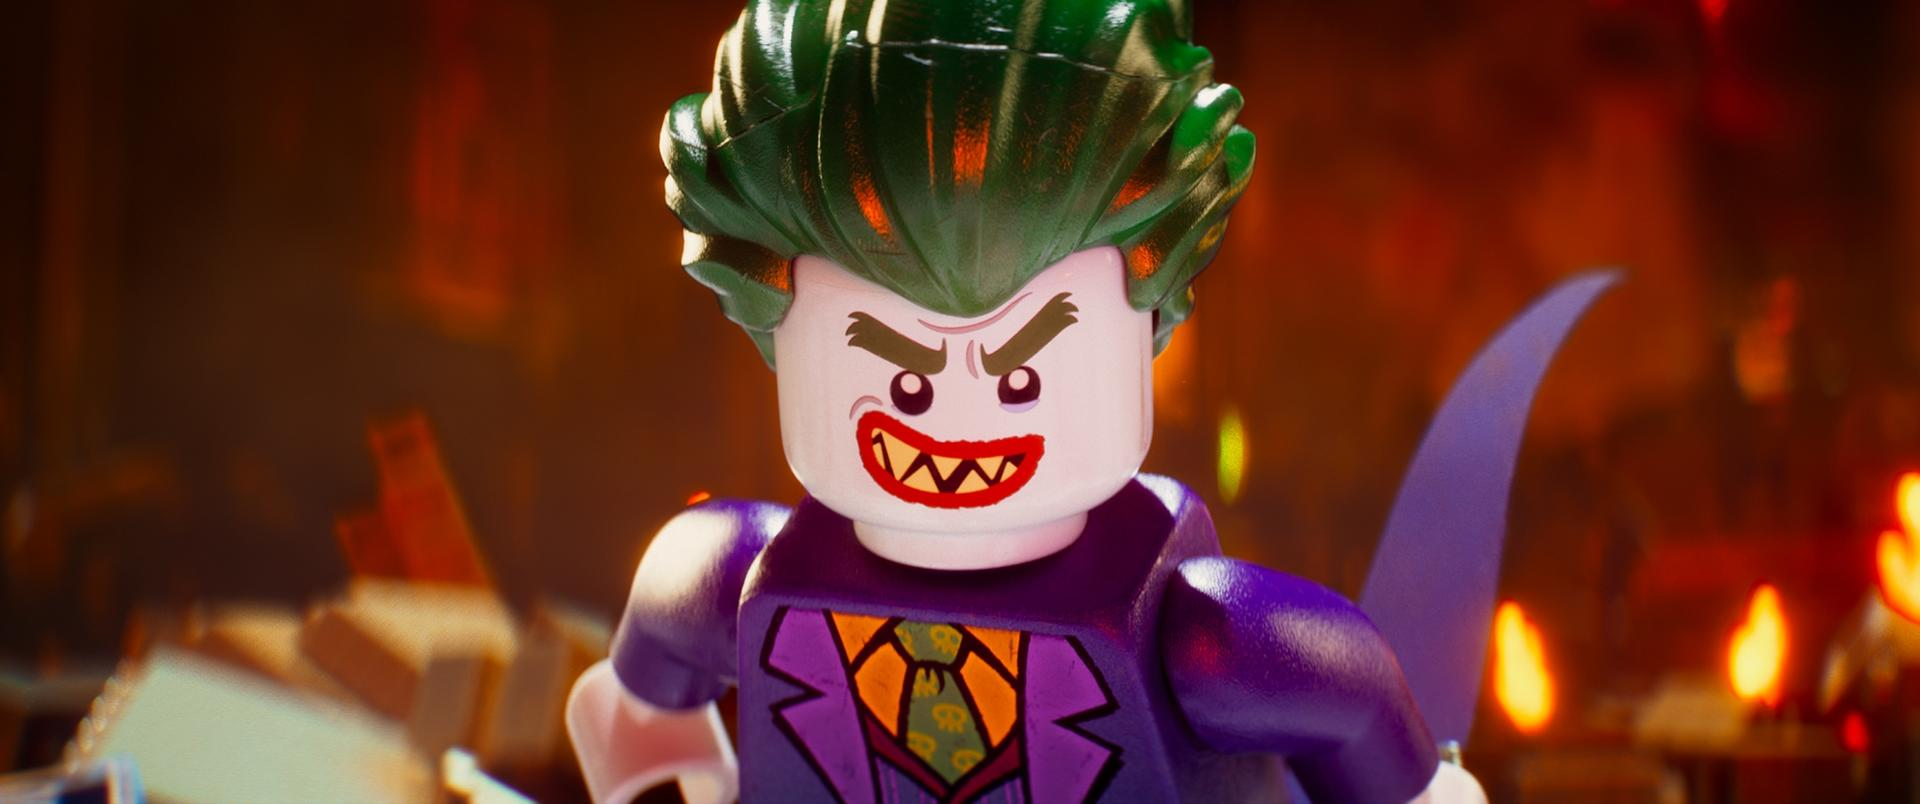 The Lego Batman Movie Joker Gronkh